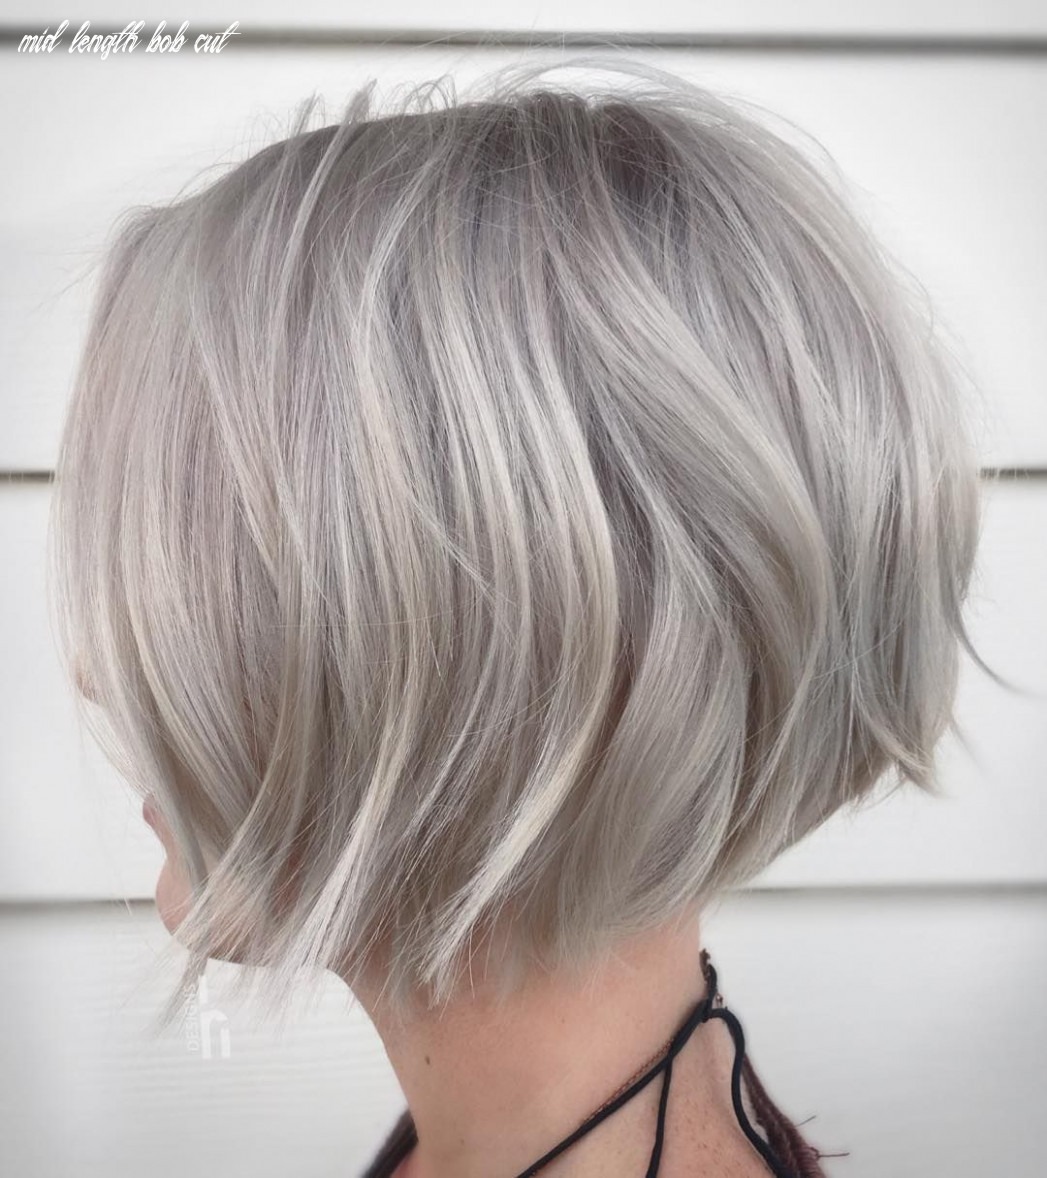 9 stylish medium bob haircuts for women easy care chic bob hair